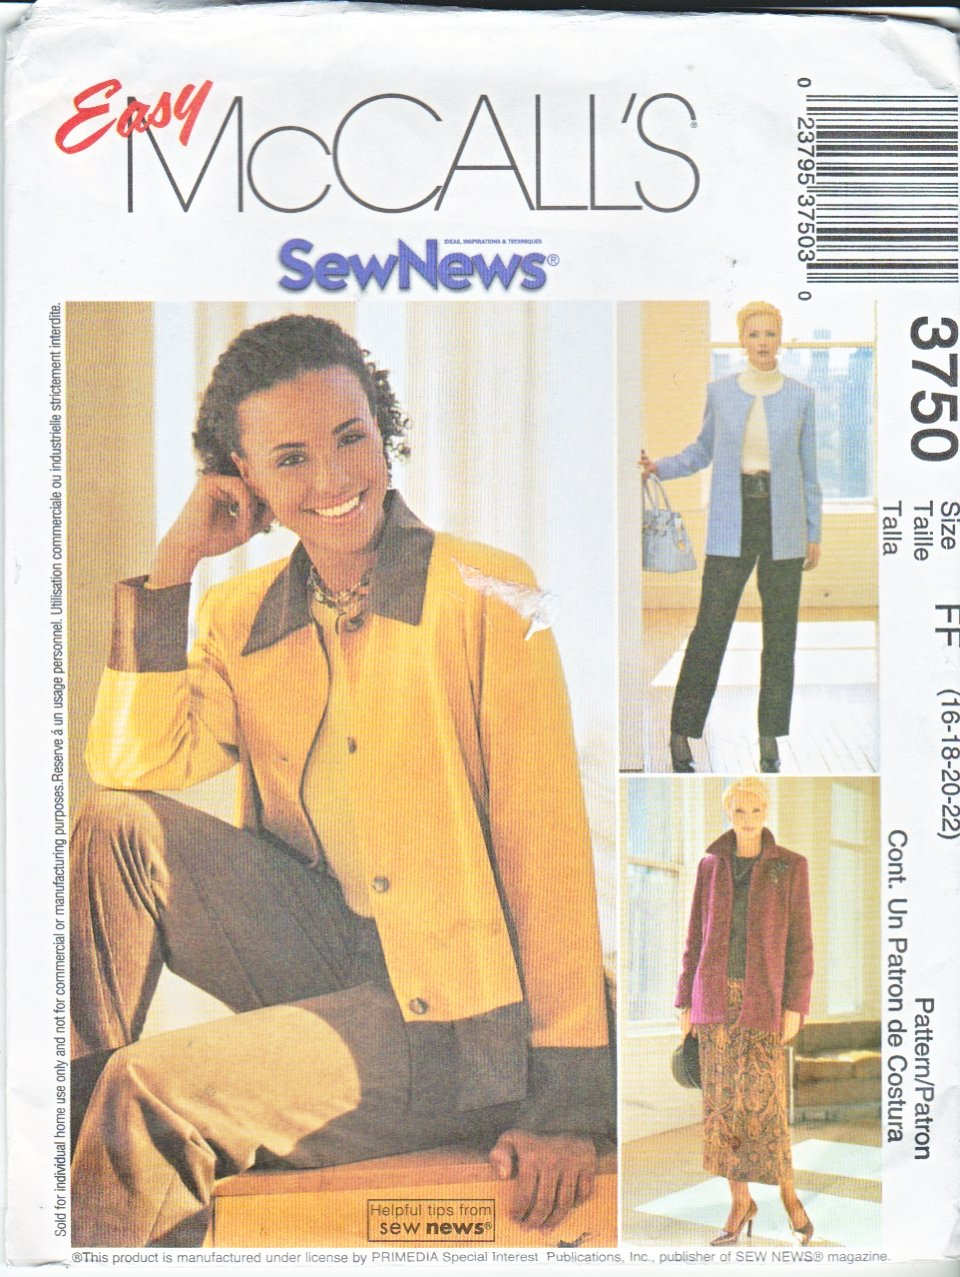 McCall's Sewing Pattern 3750 Misses Size 6-12 Easy Sew News Button Front Jacket Skirt Pants